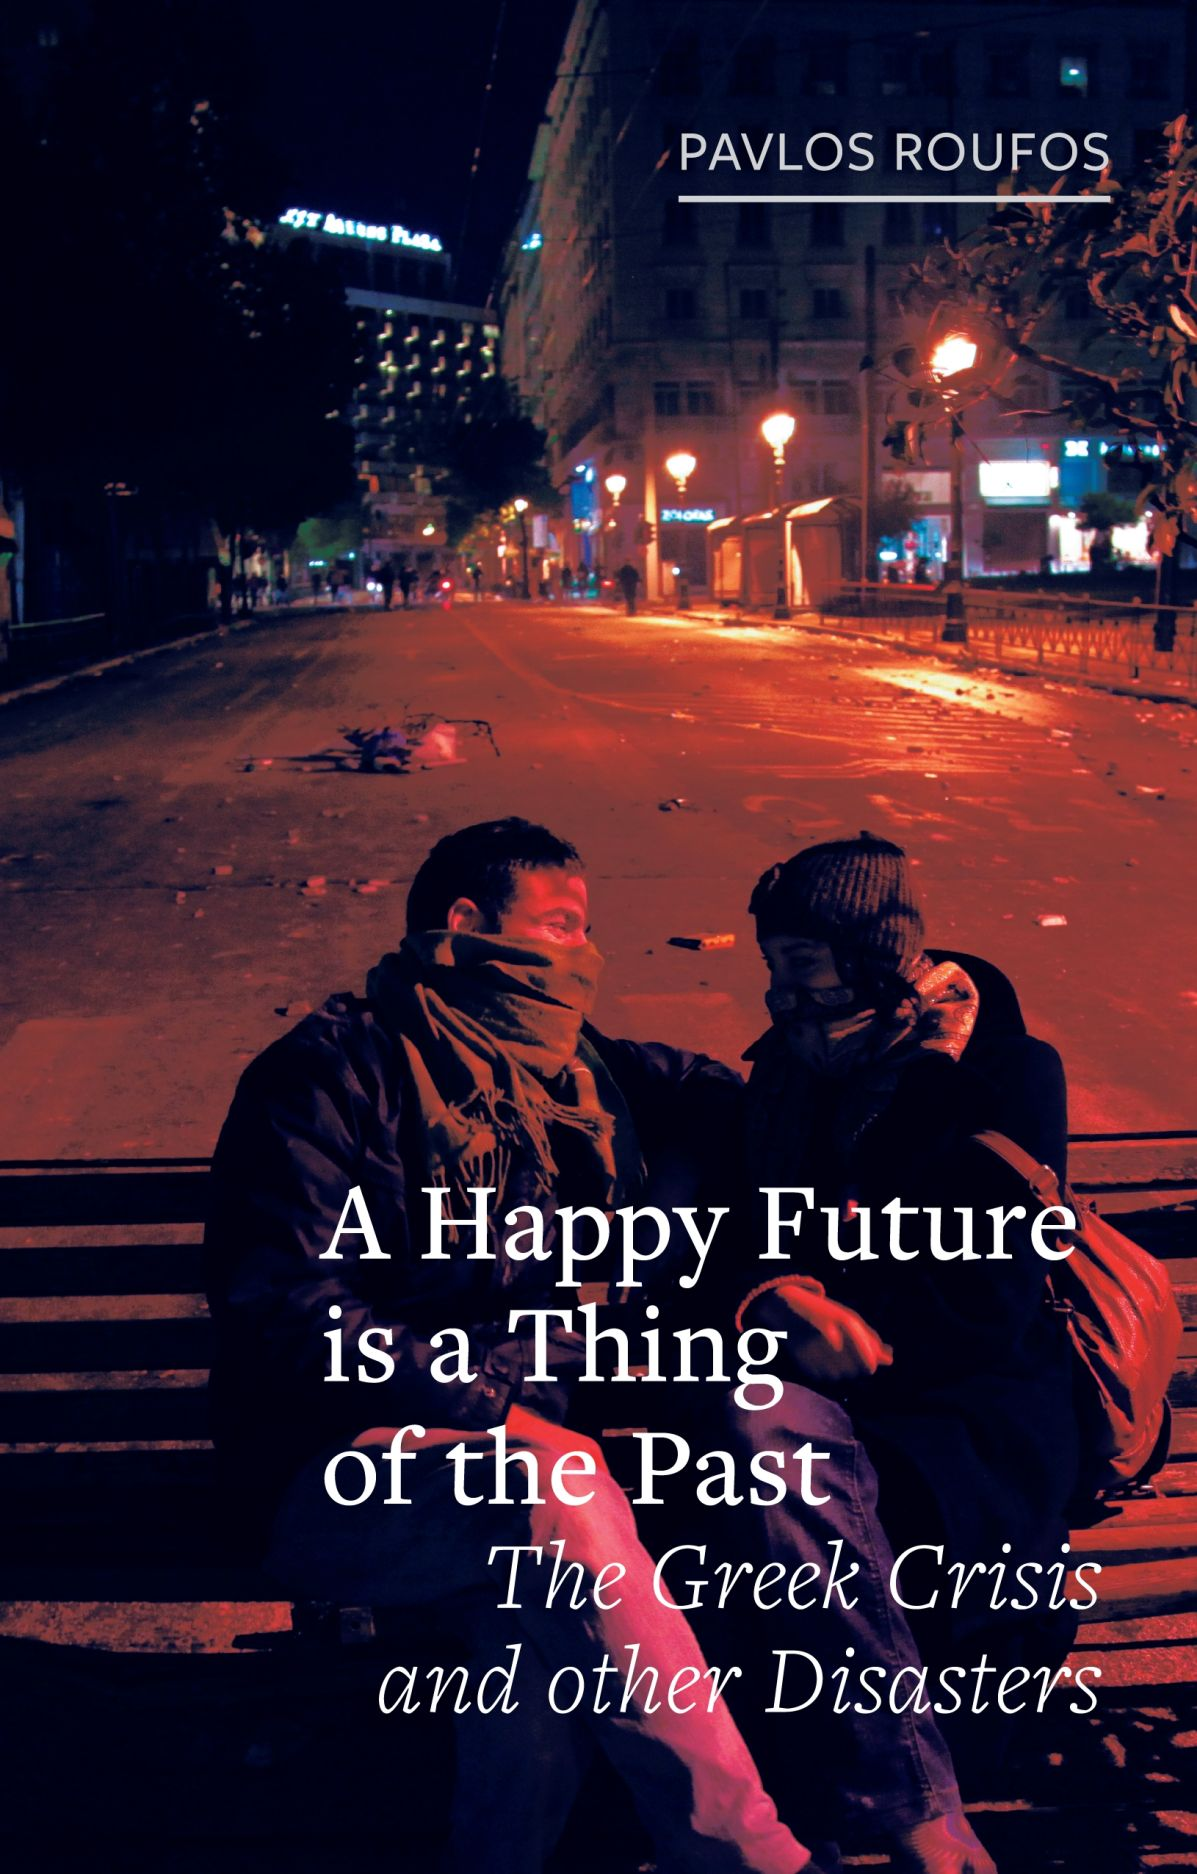 A Happy Future Is a Thing of the Past